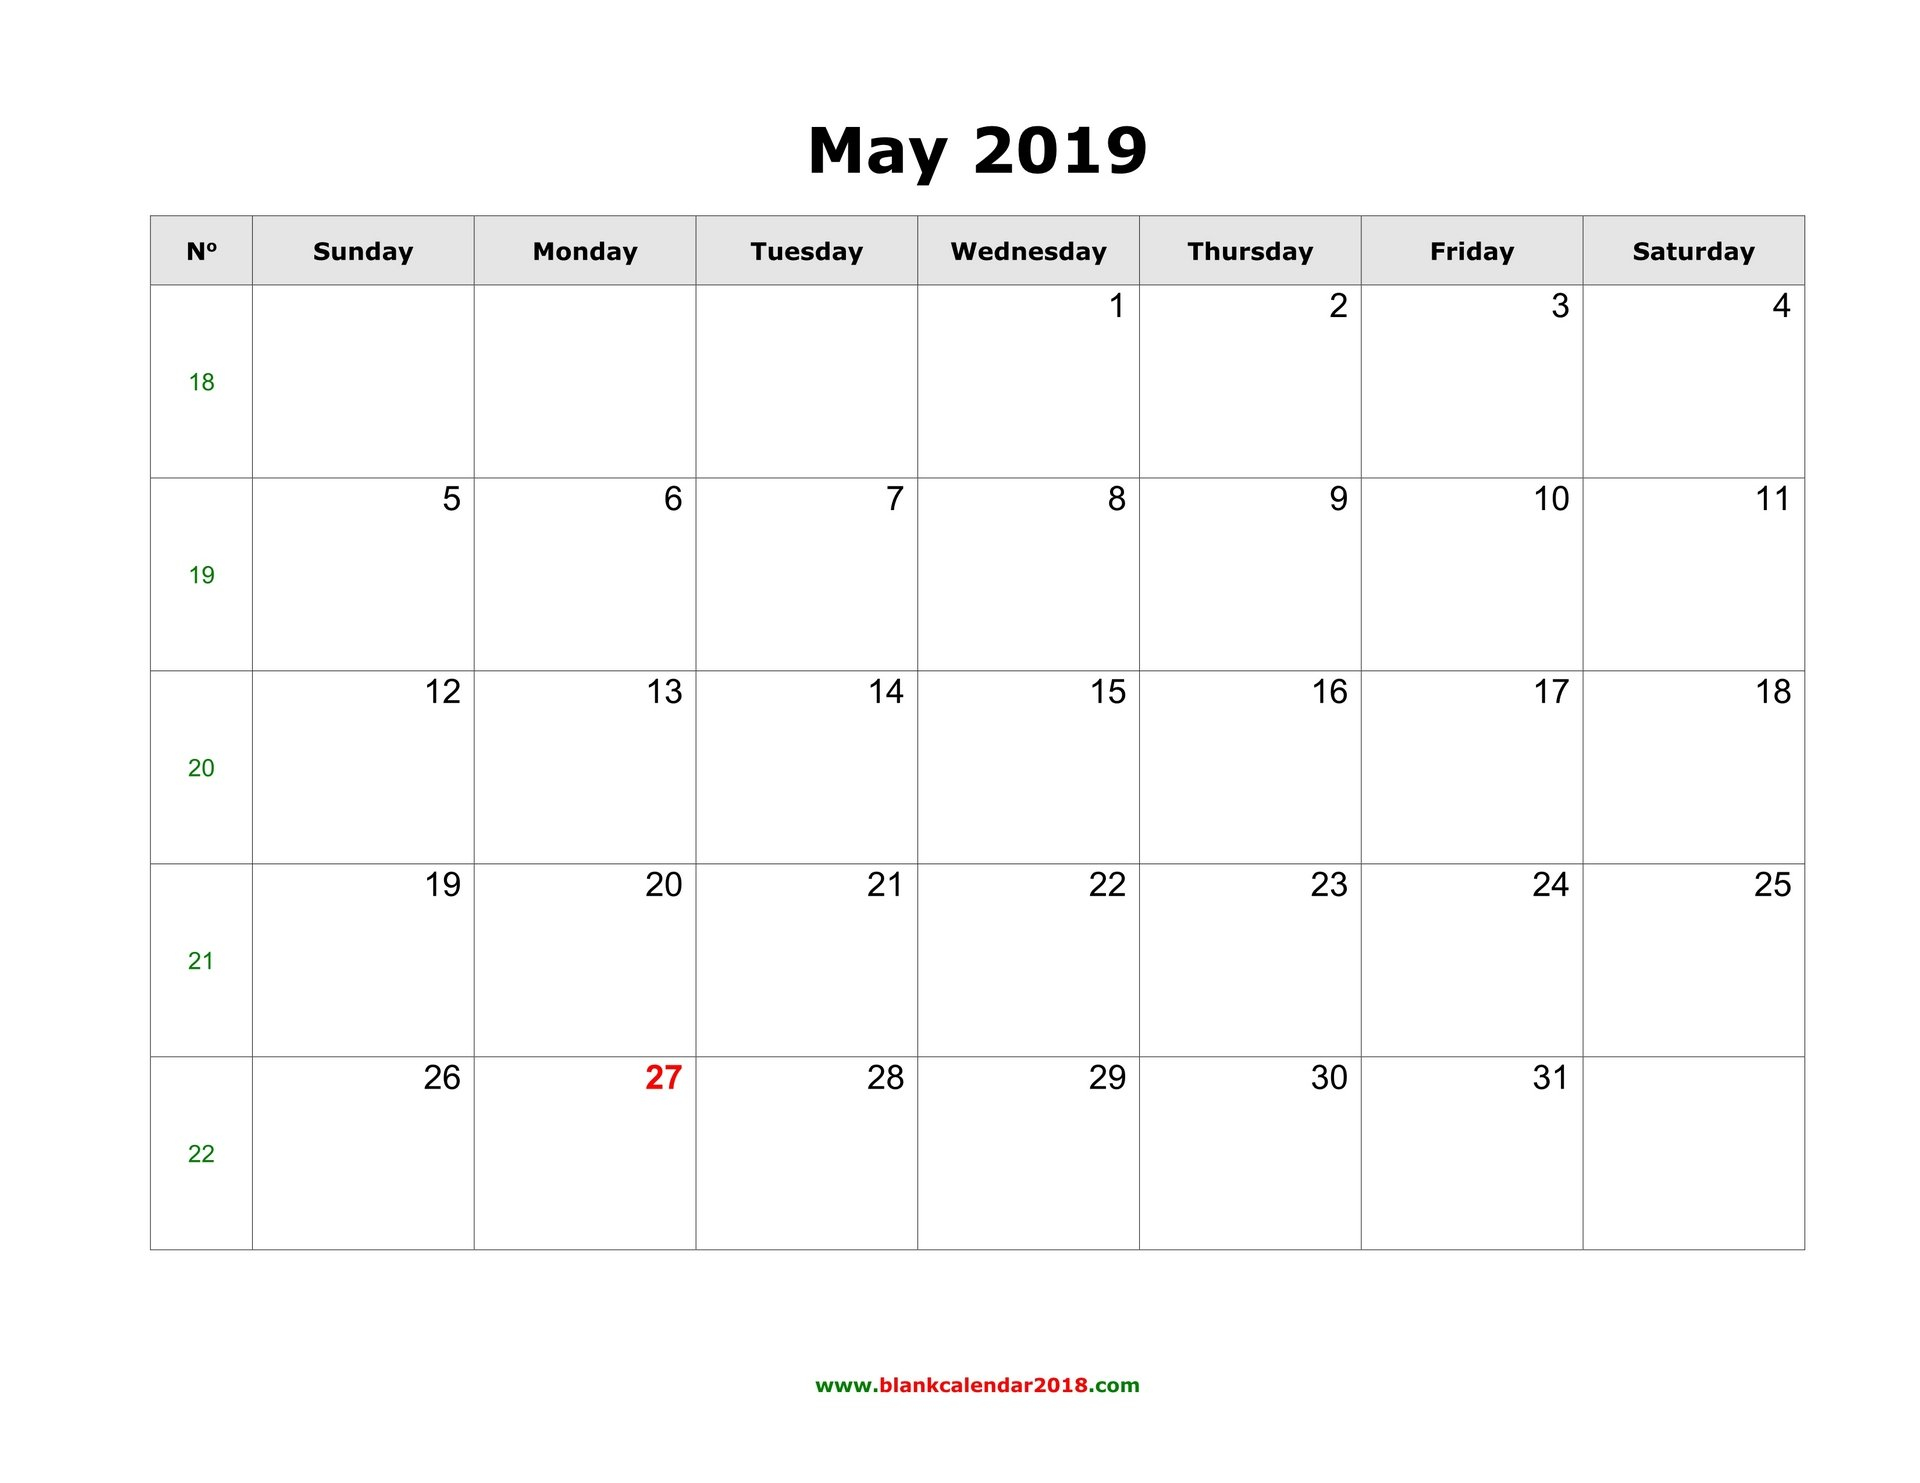 Blank Calendar For May 2019 Calendar 2019 Template Word